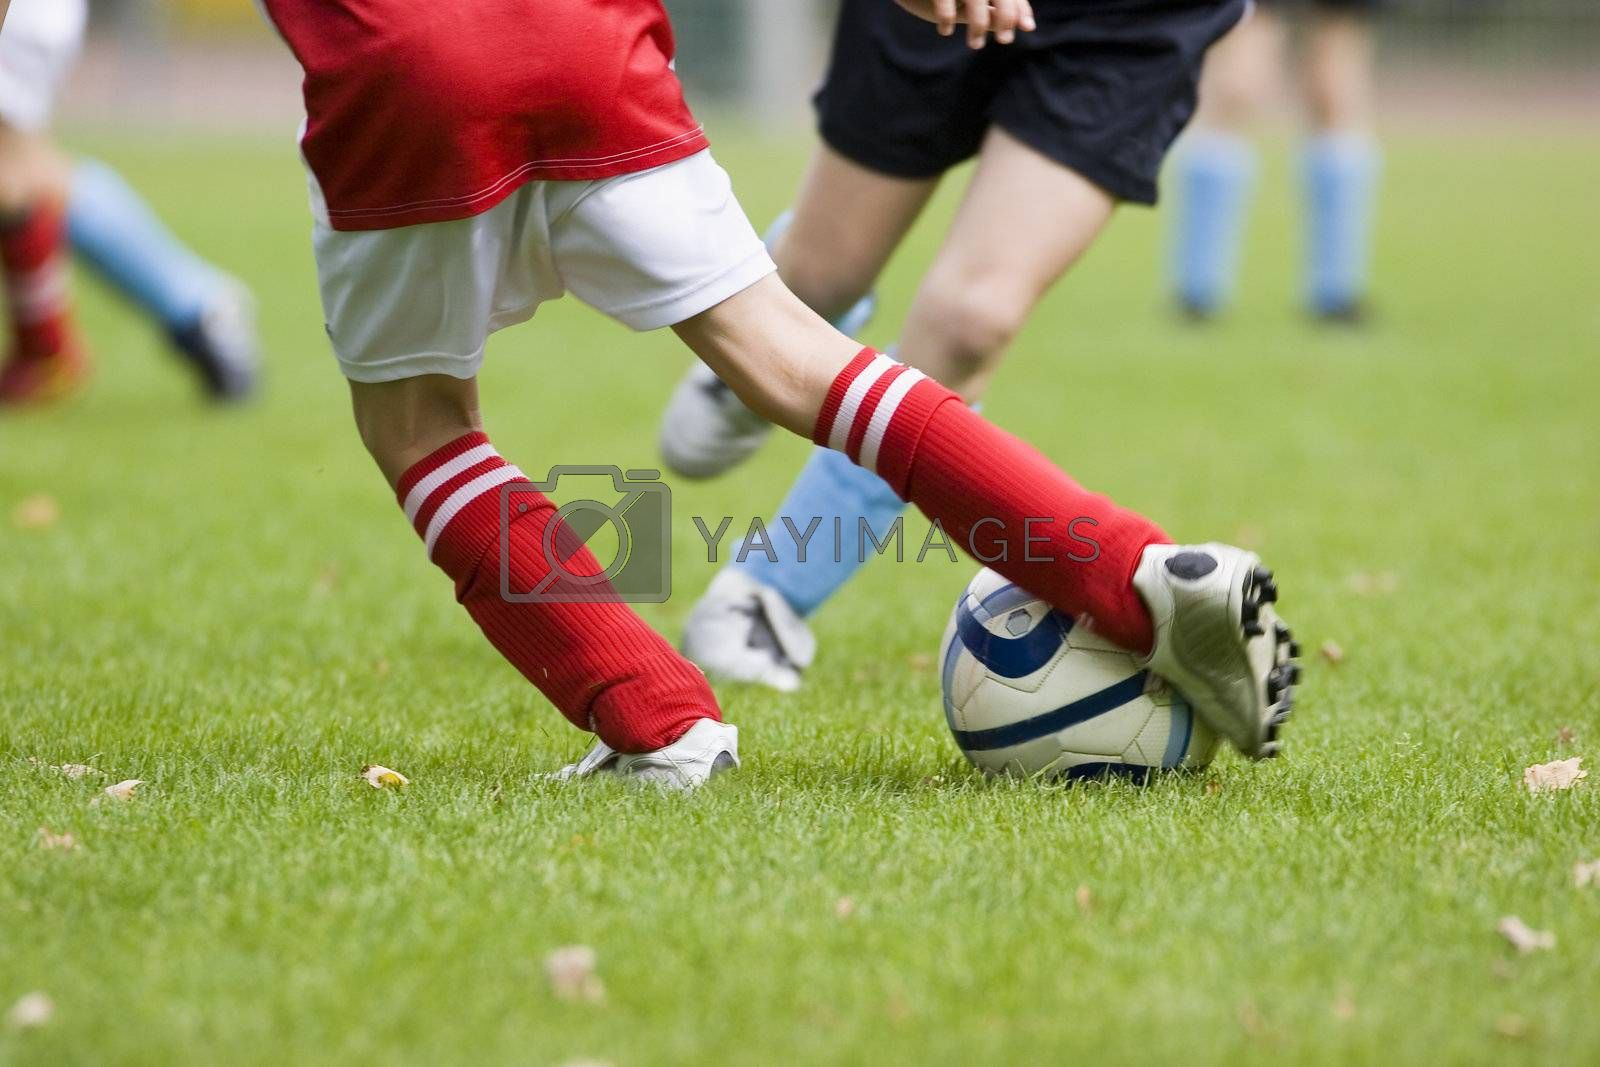 Detail of a football match - focus on the feet and the football